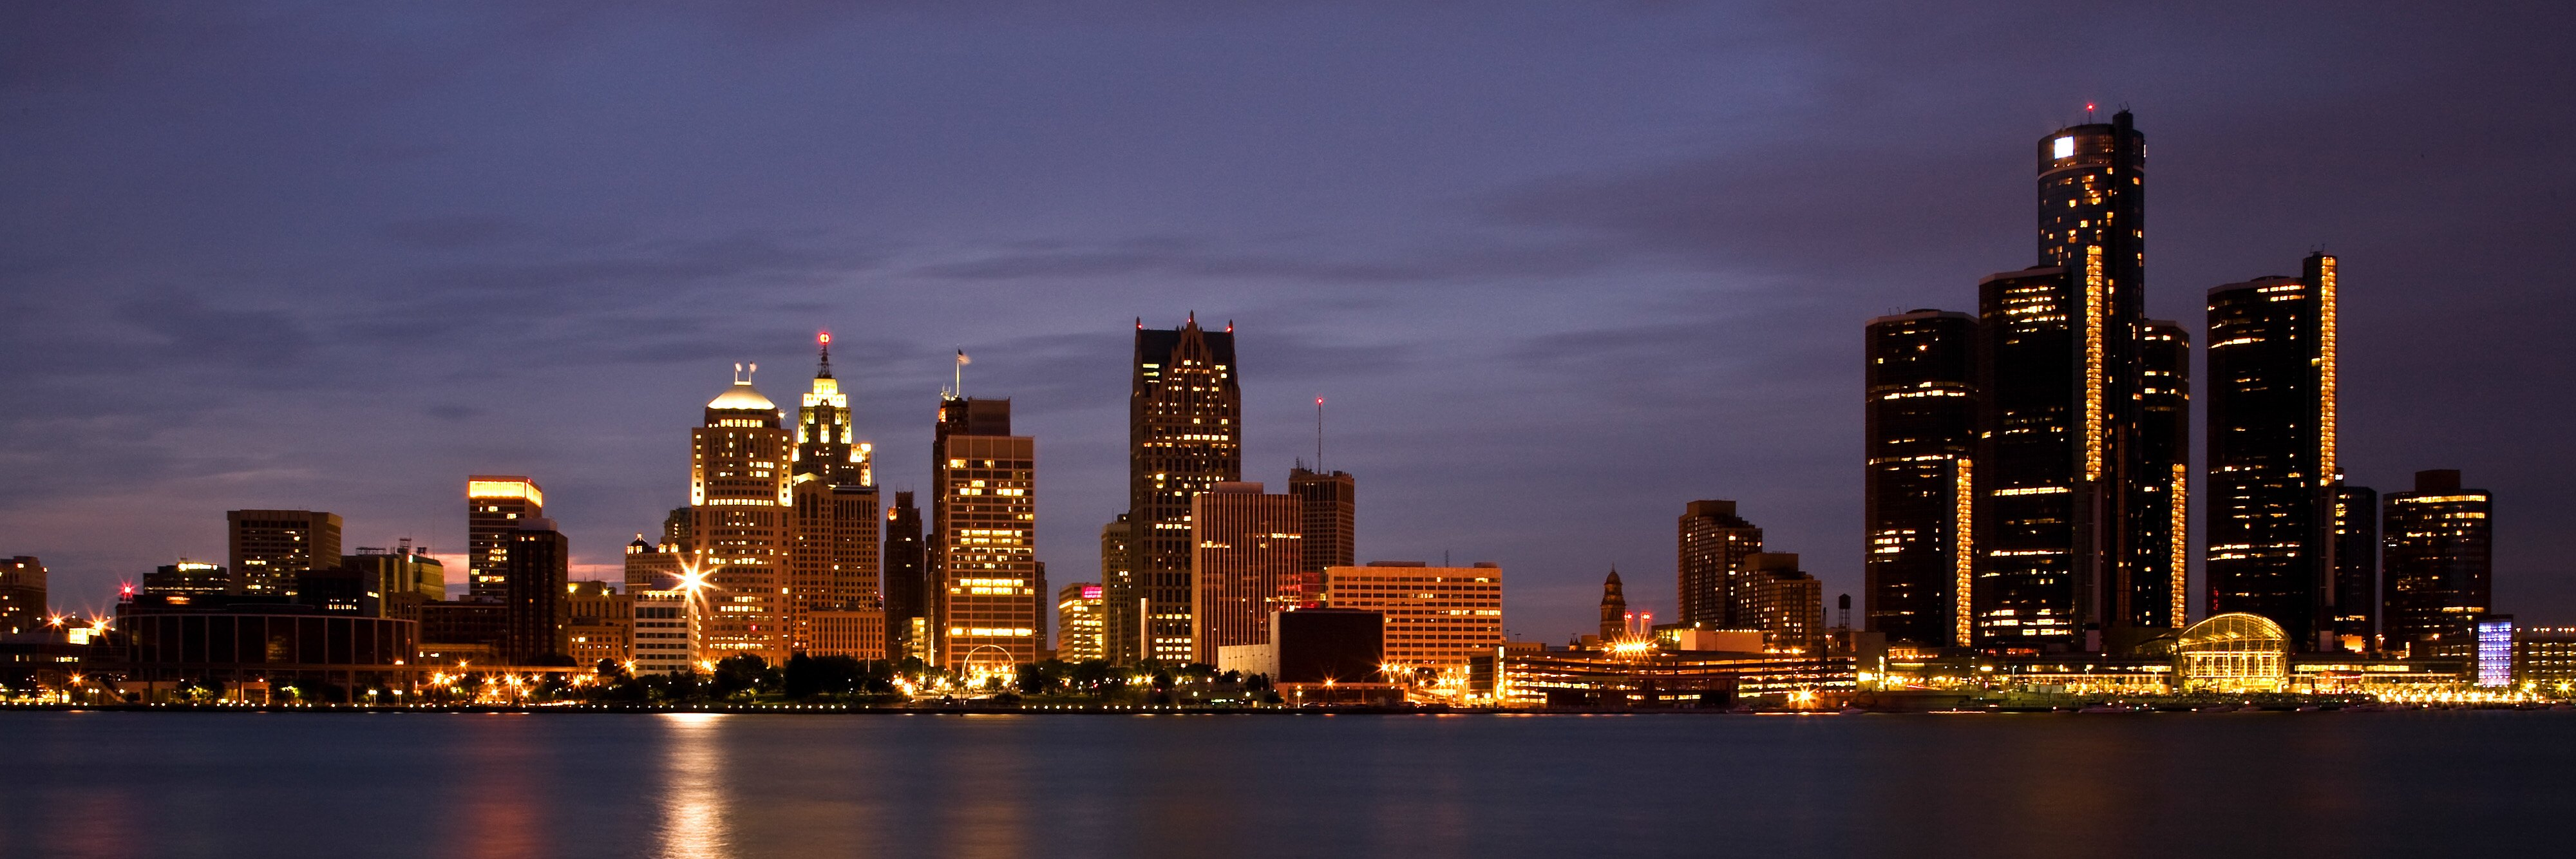 New Data Center from US Signal to be Built in Detroit Area